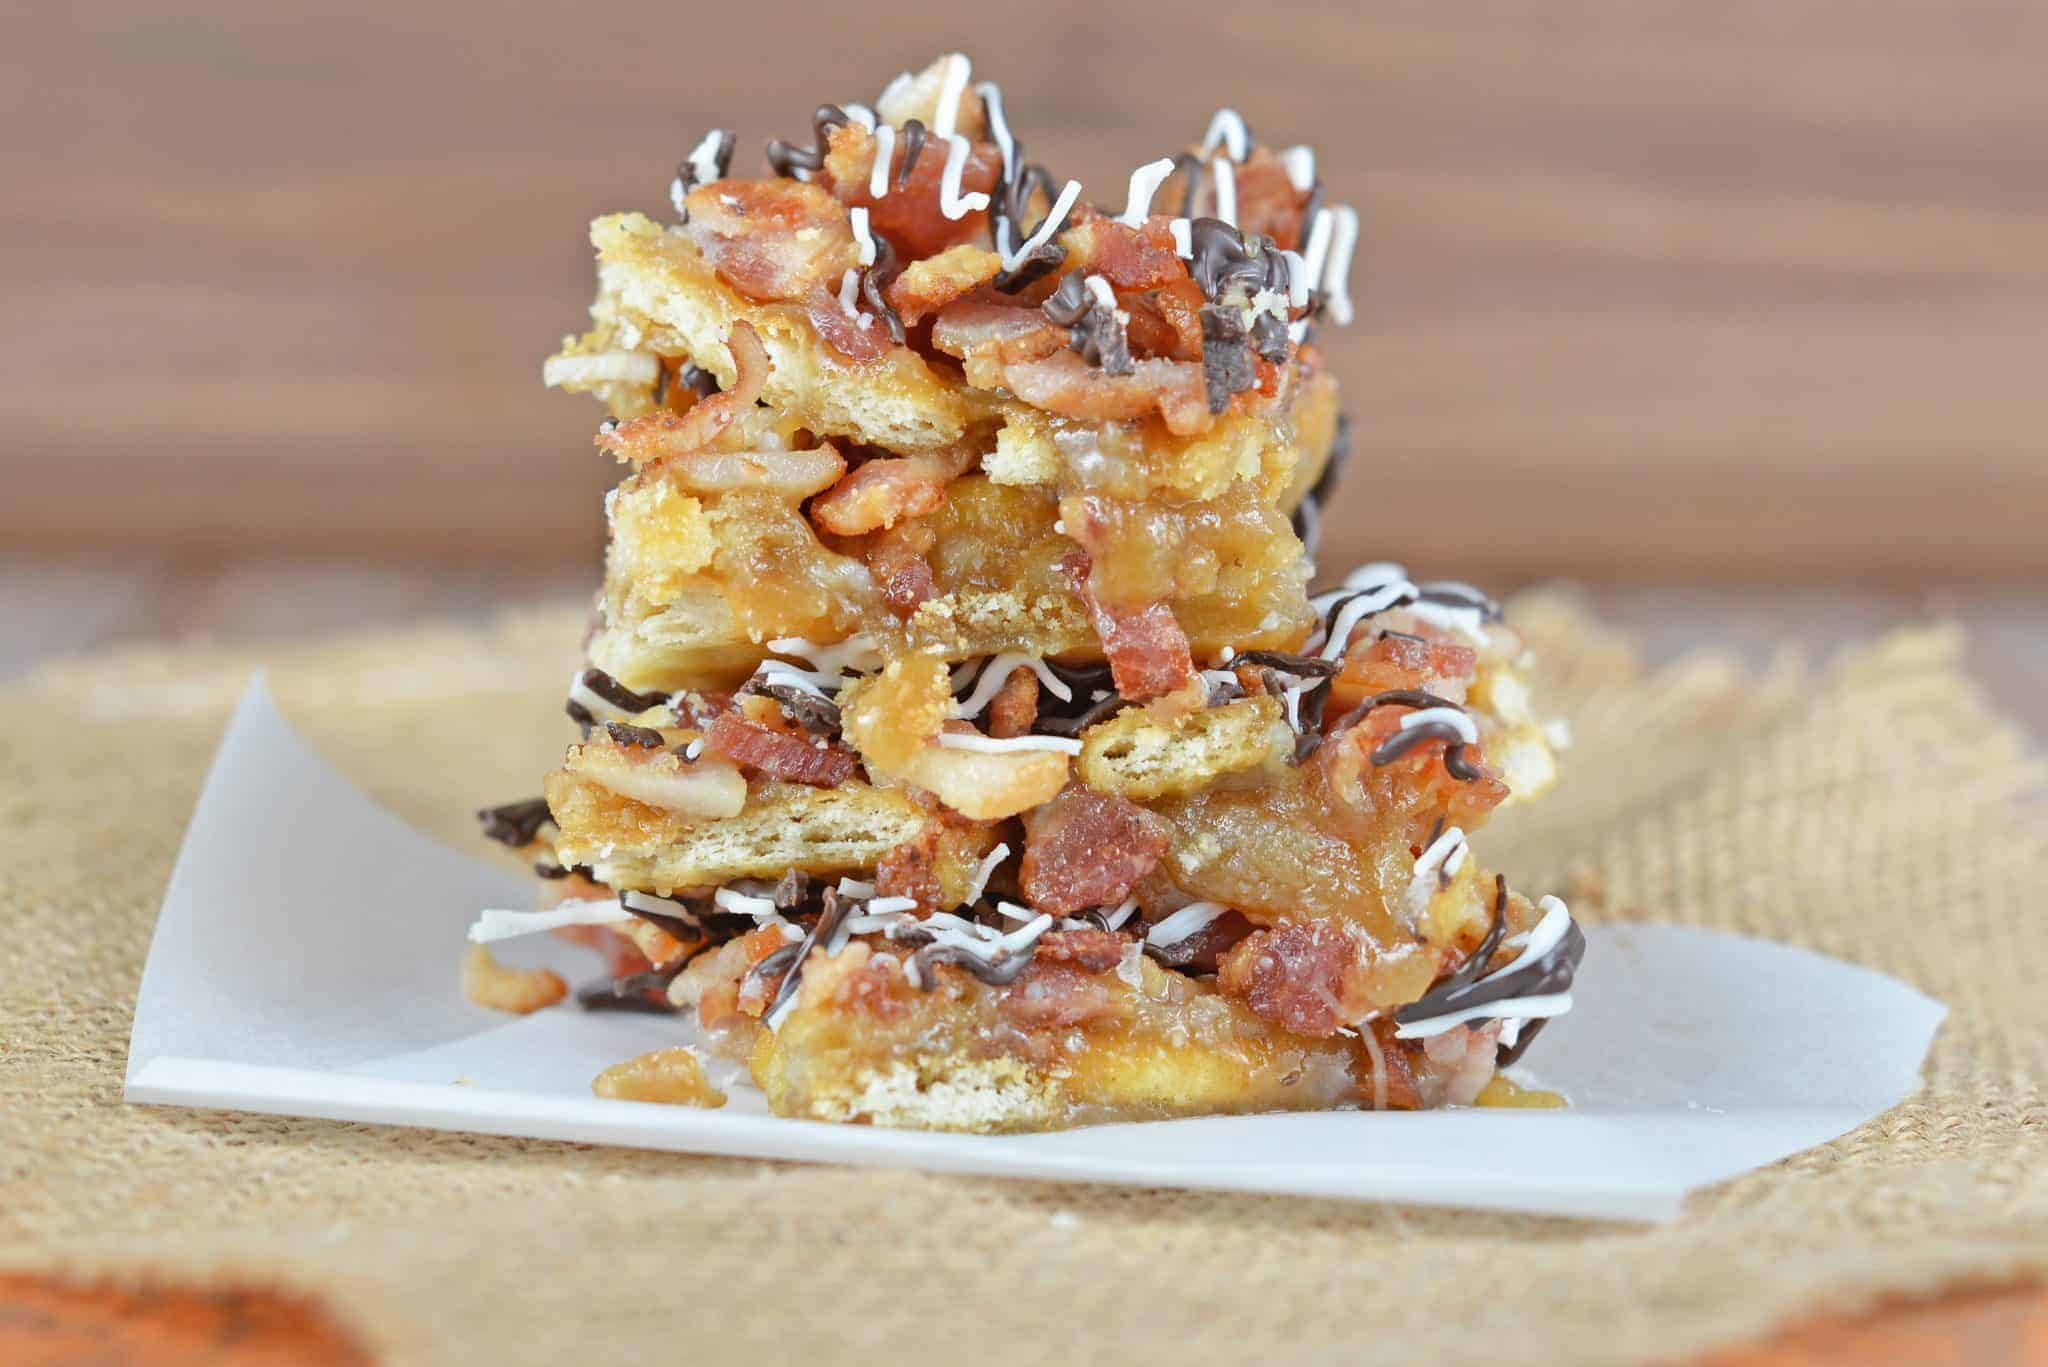 Chocolate Bacon Saltine Toffee is additively delicious, easy to make and the perfect addition to any holiday cookie tray!